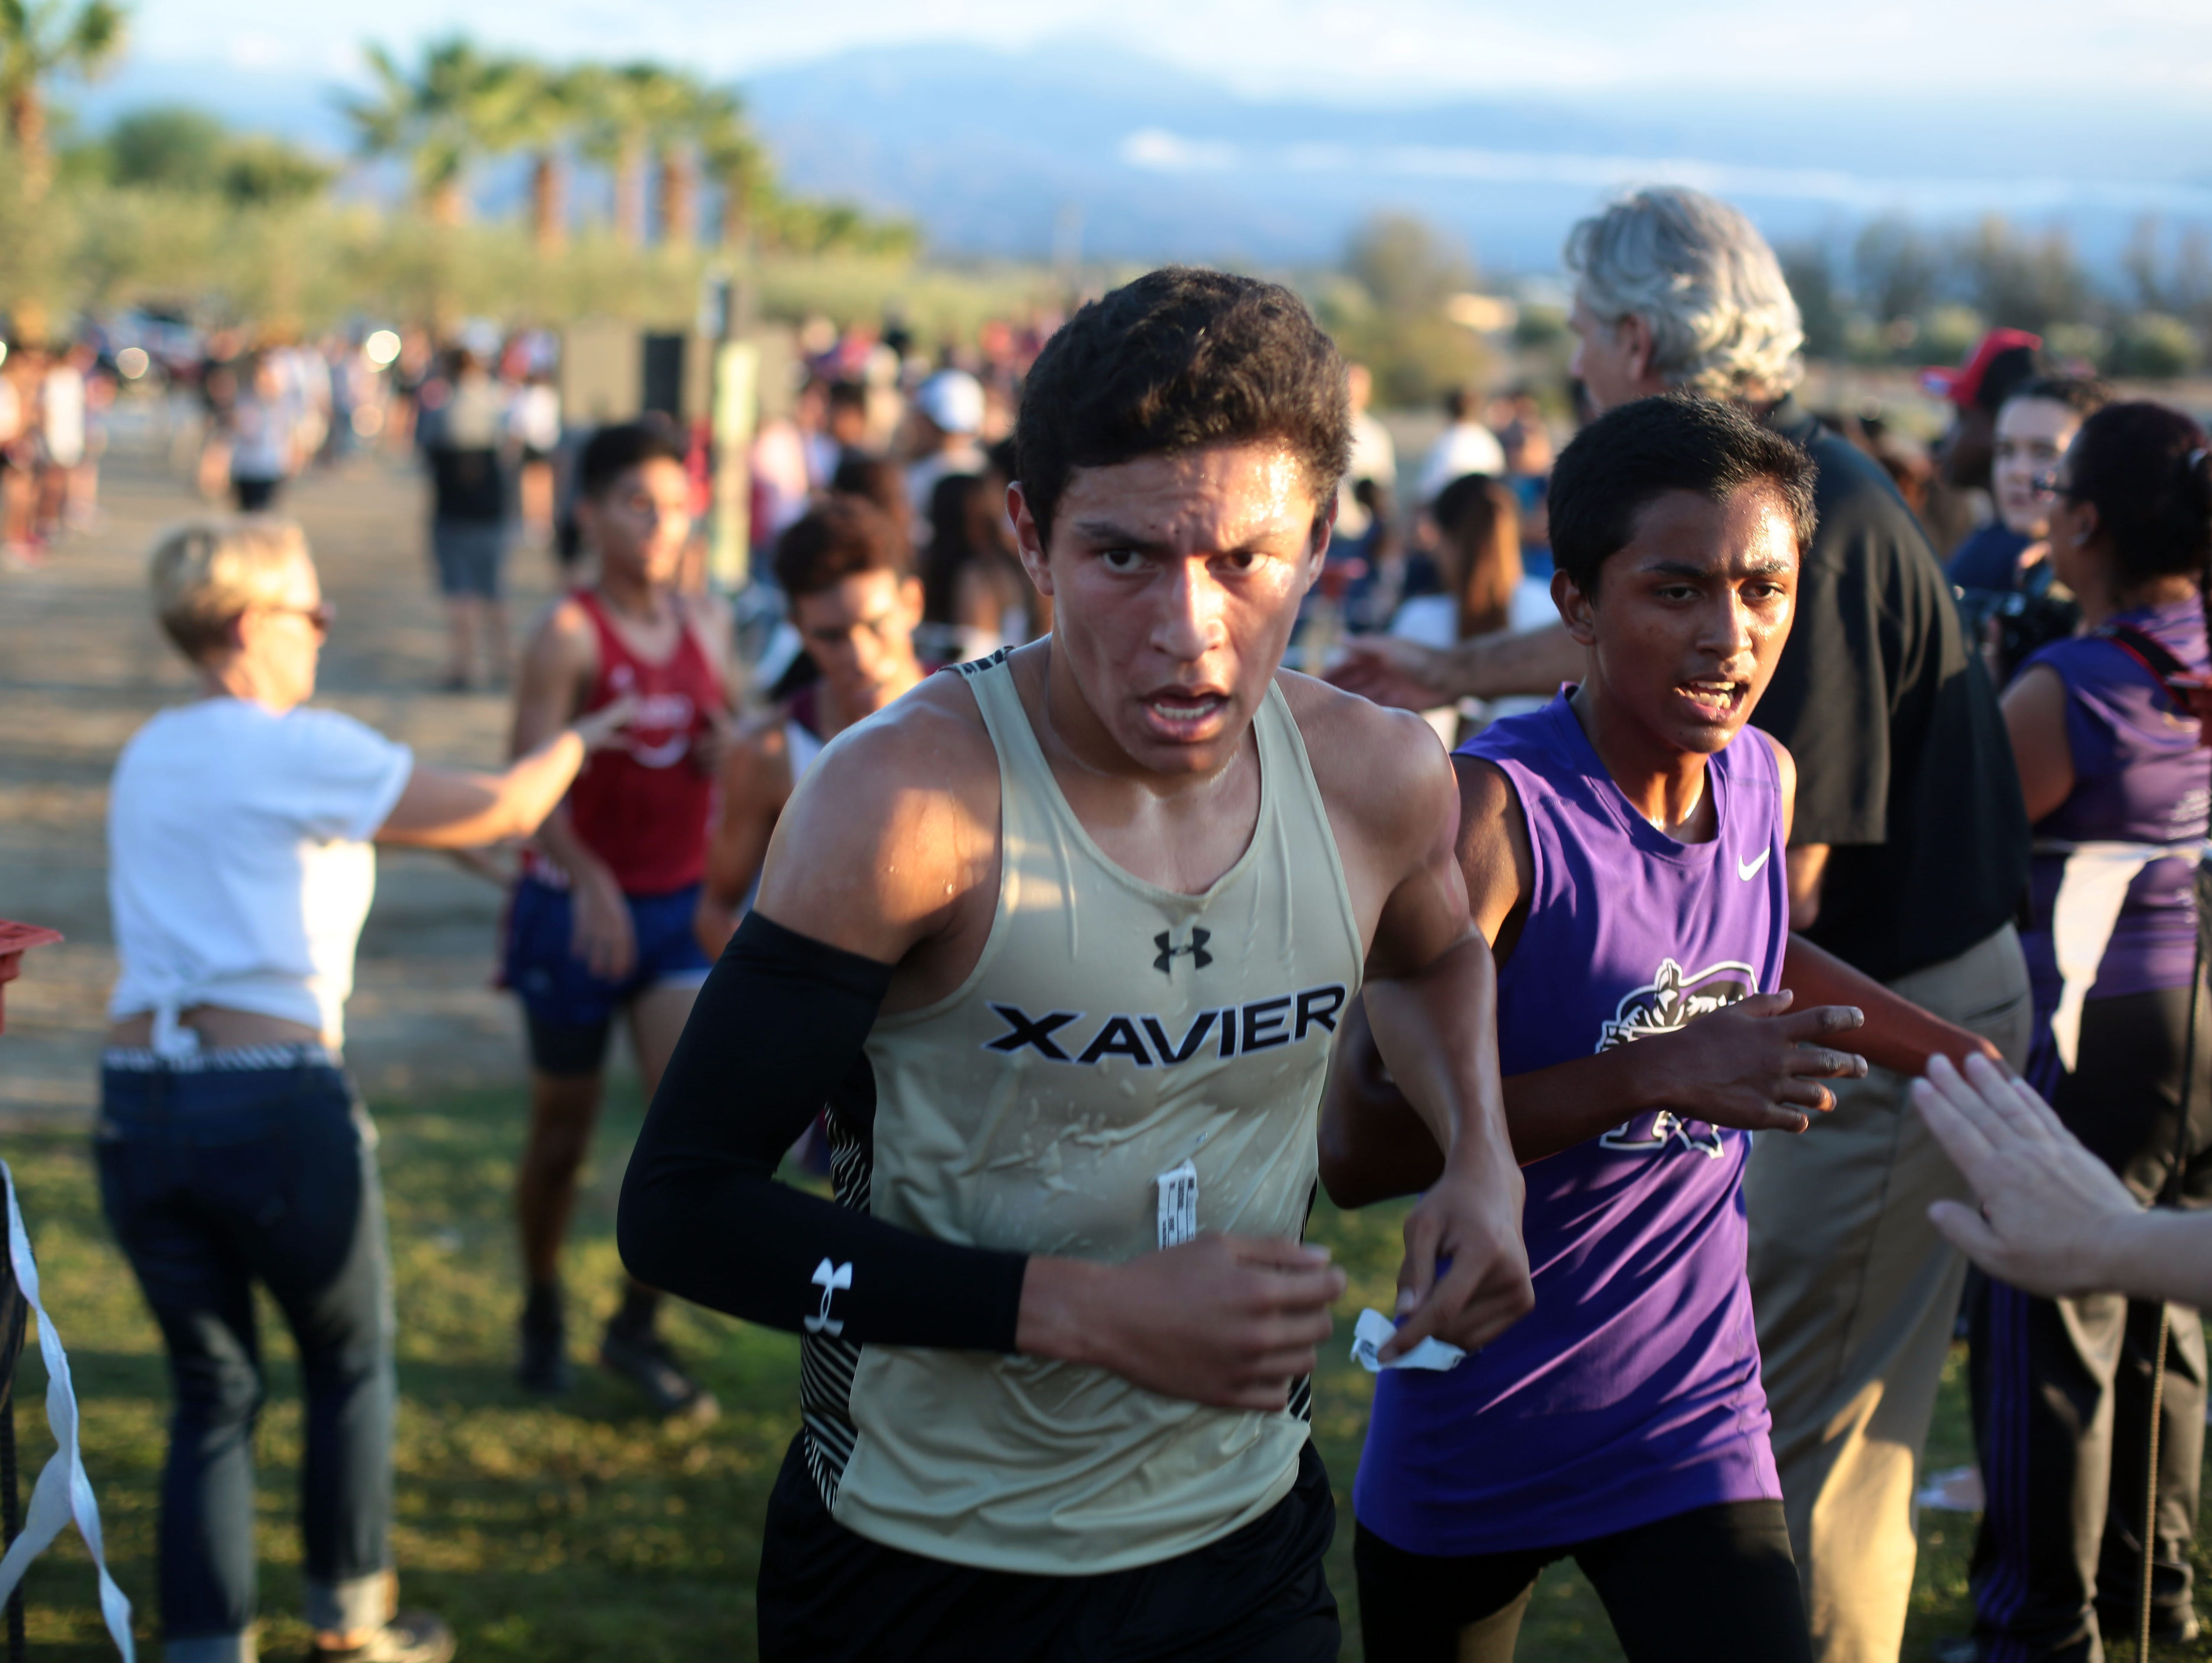 Scene from the cross country meet at Xavier College Prep in Palm Desert on Wednesday, September 21, 2016.